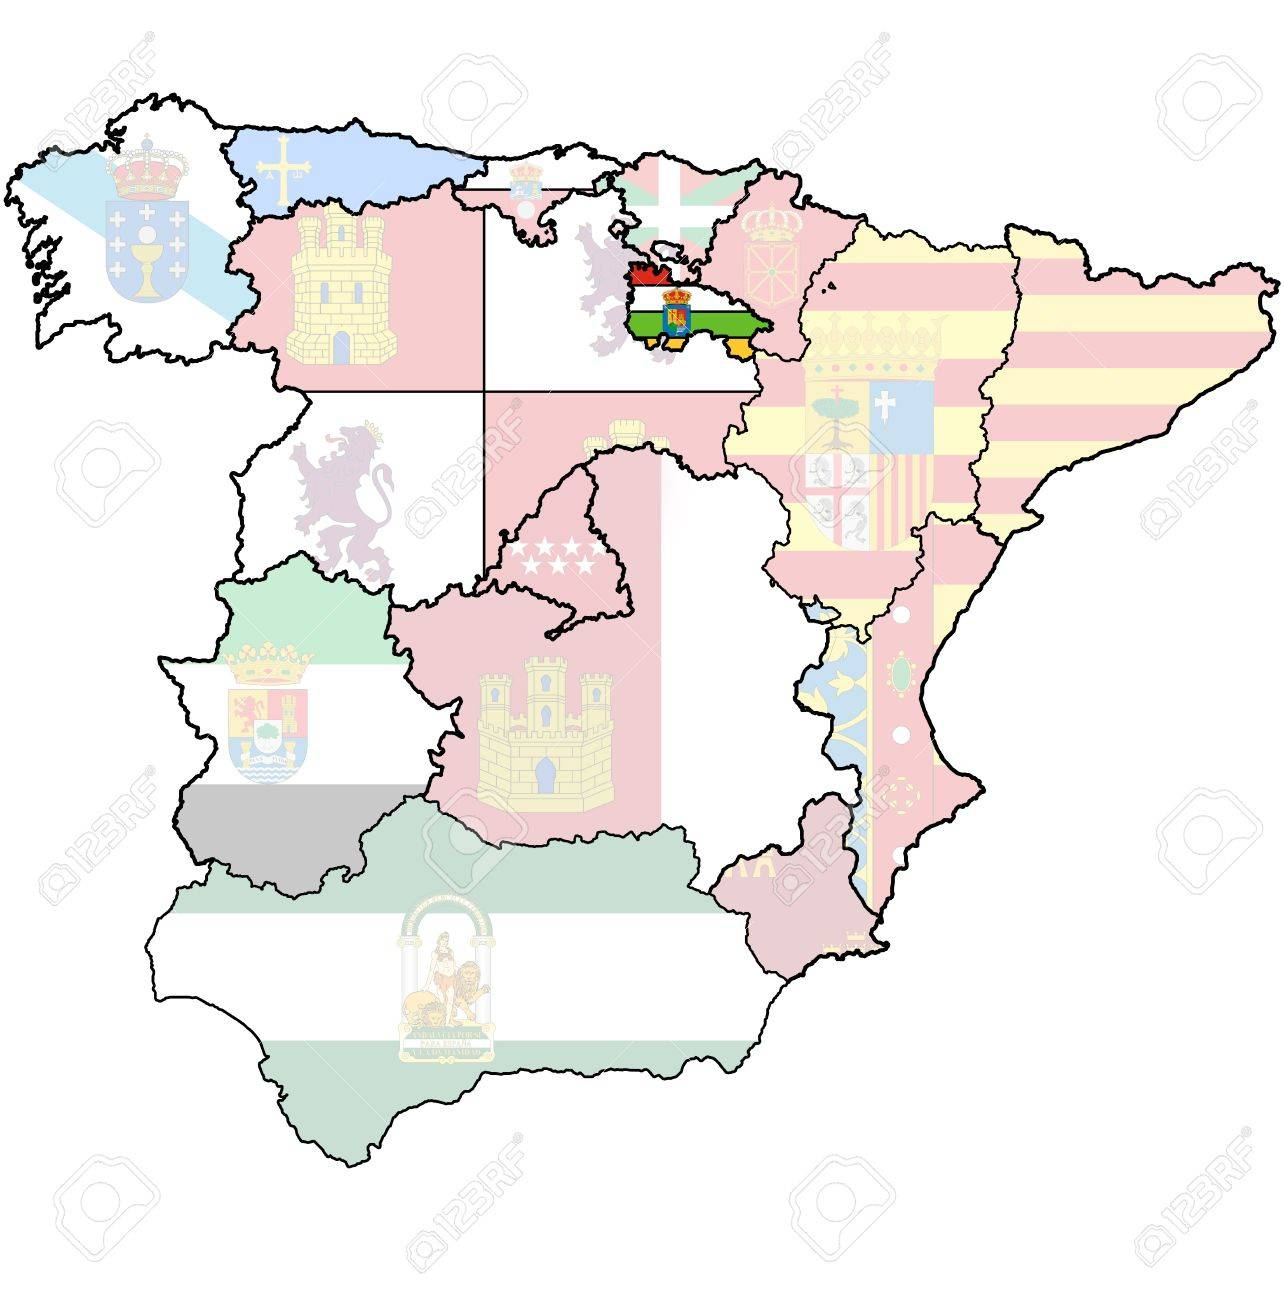 Rioja Region Spain Map.La Rioja Region On Administration Map Of Regions Of Spain With